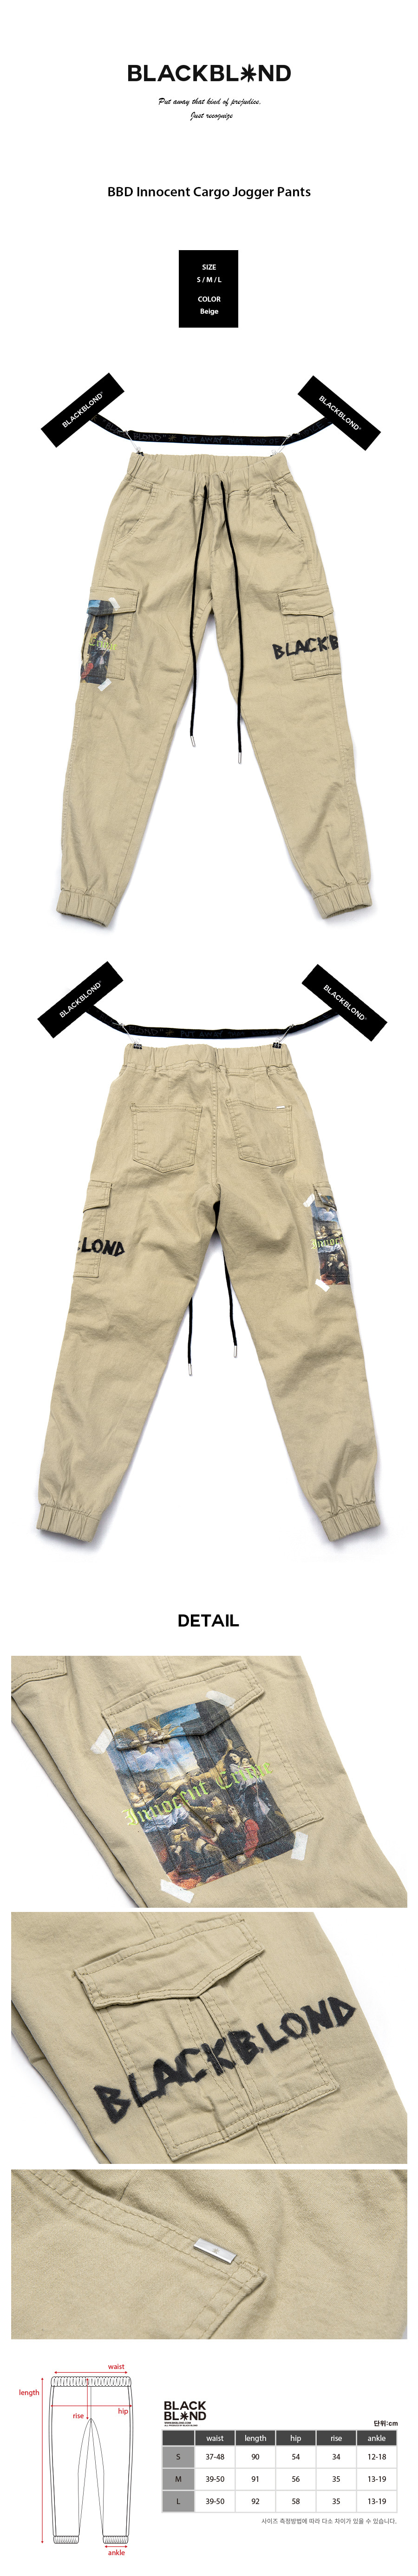 블랙블론드 BLACKBLOND - BBD Innocent Cargo Jogger Pants (Beige)